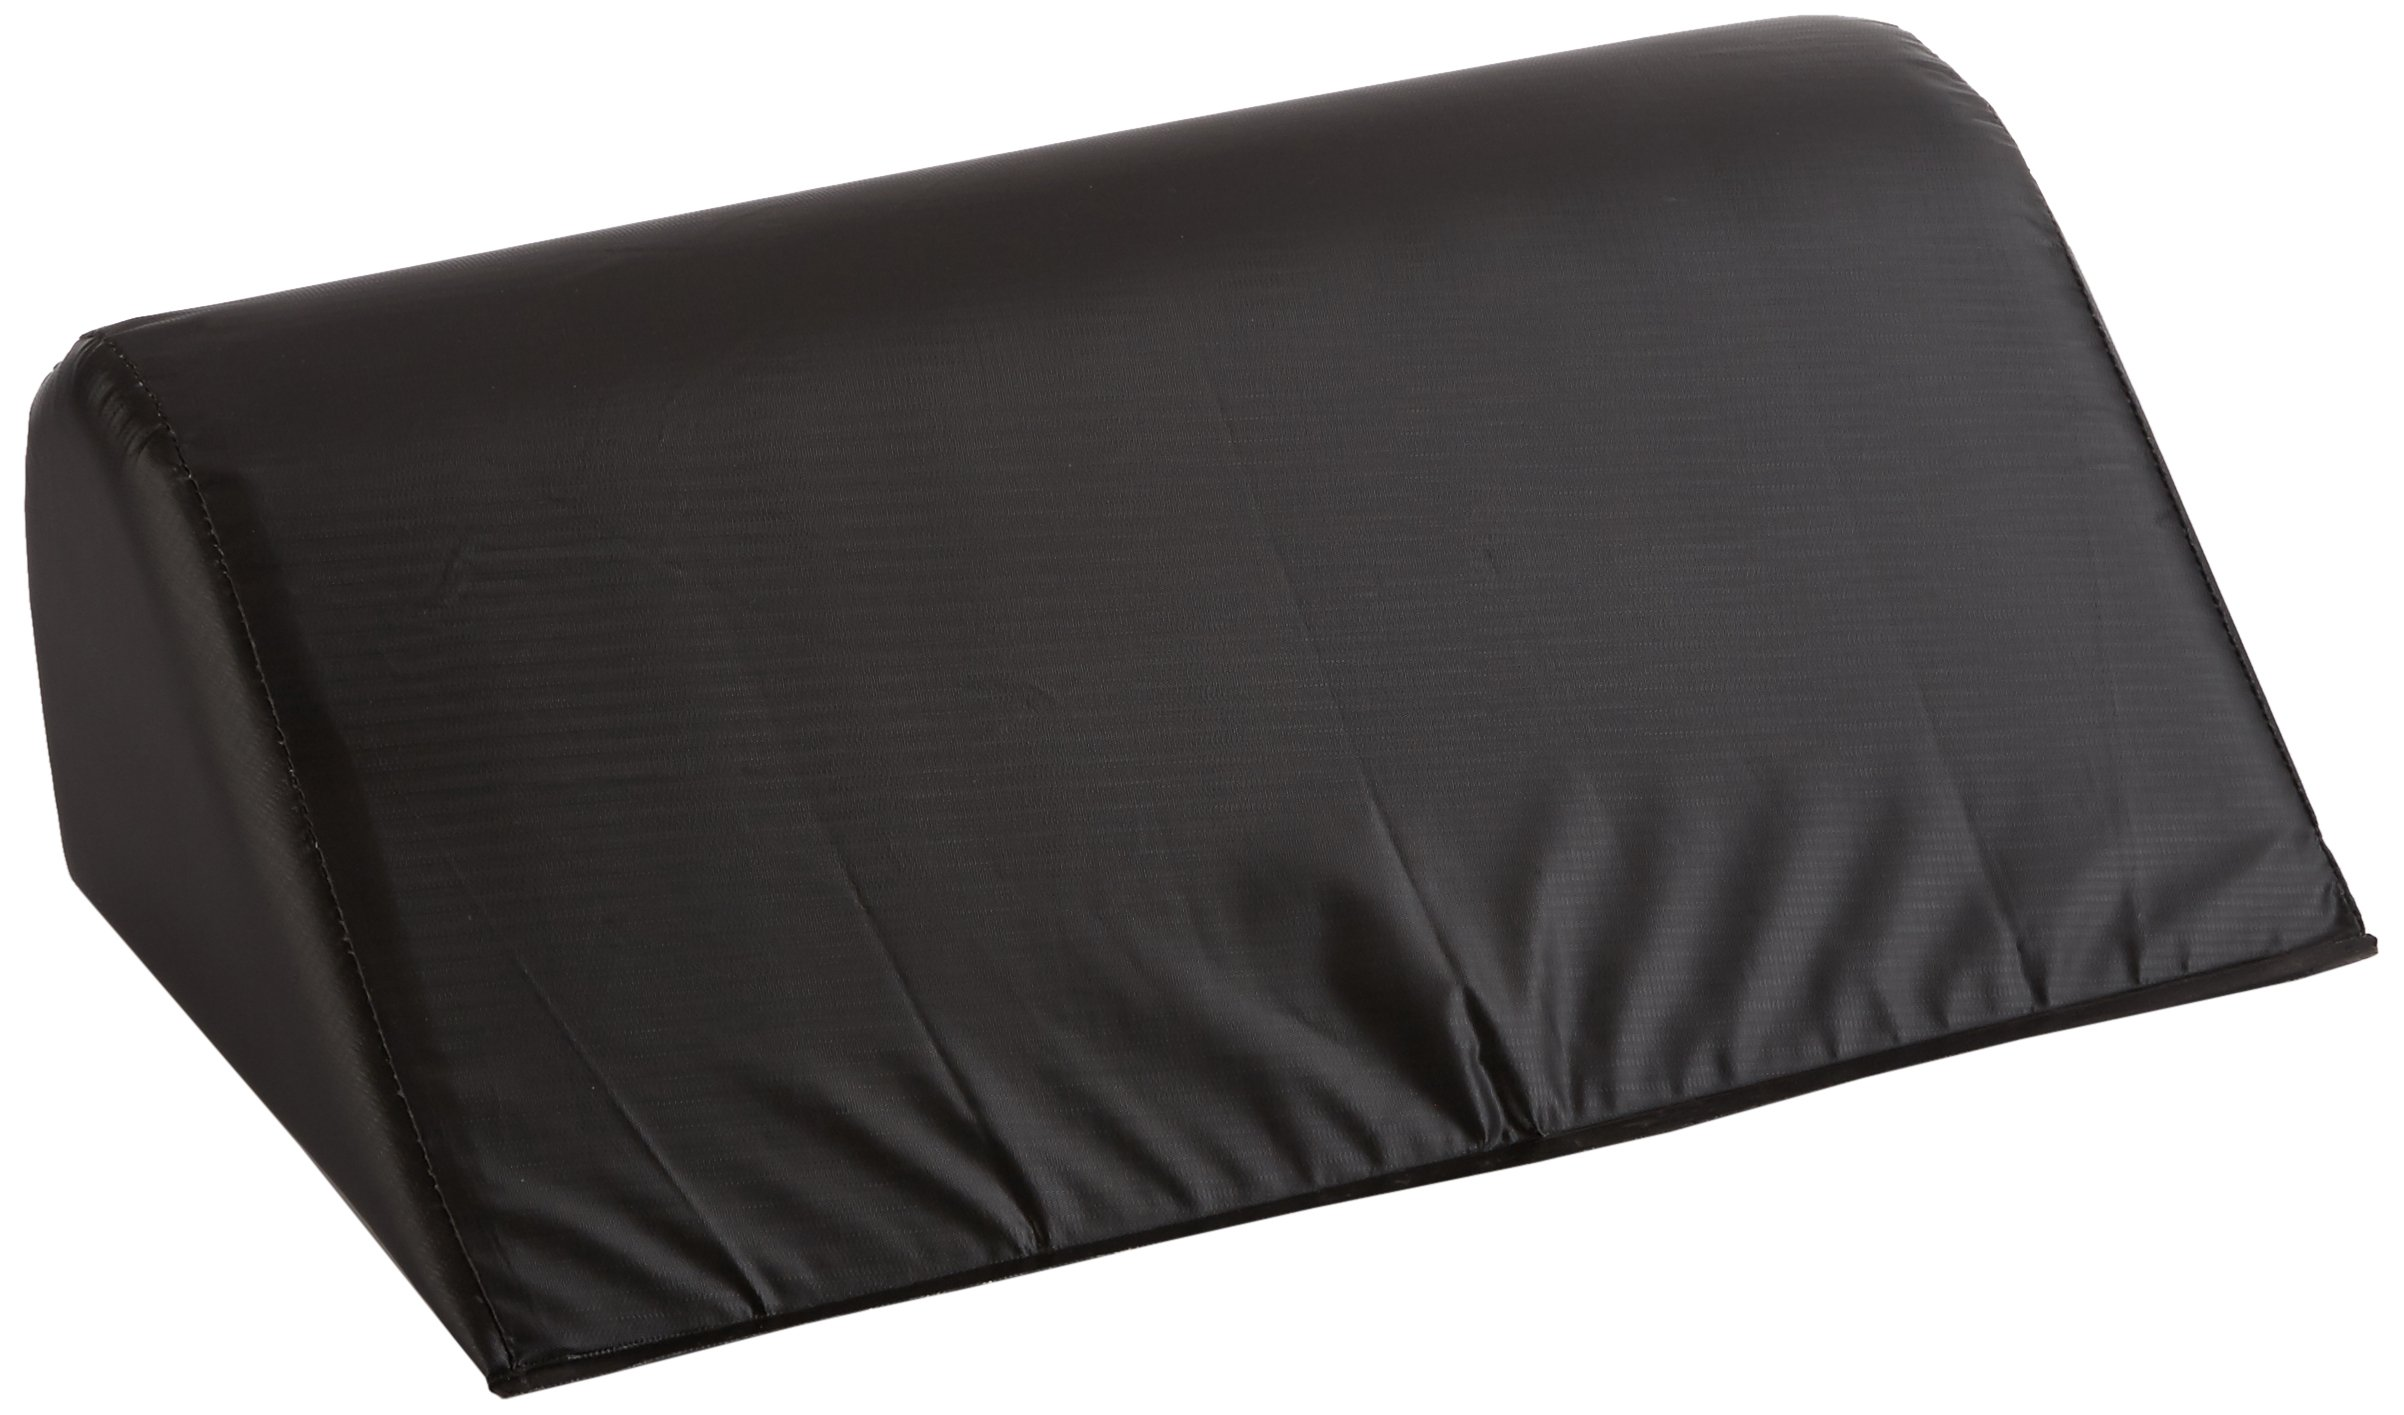 "Sammons Preston Angular 40º Therapy Bolster, Black Wedge Bolster with Foam Padding & Heavy Duty Vinyl Cover for Trunk Positioning, Padded Cushion for Physical Therapy, 7""H x 21""L x 12""W"